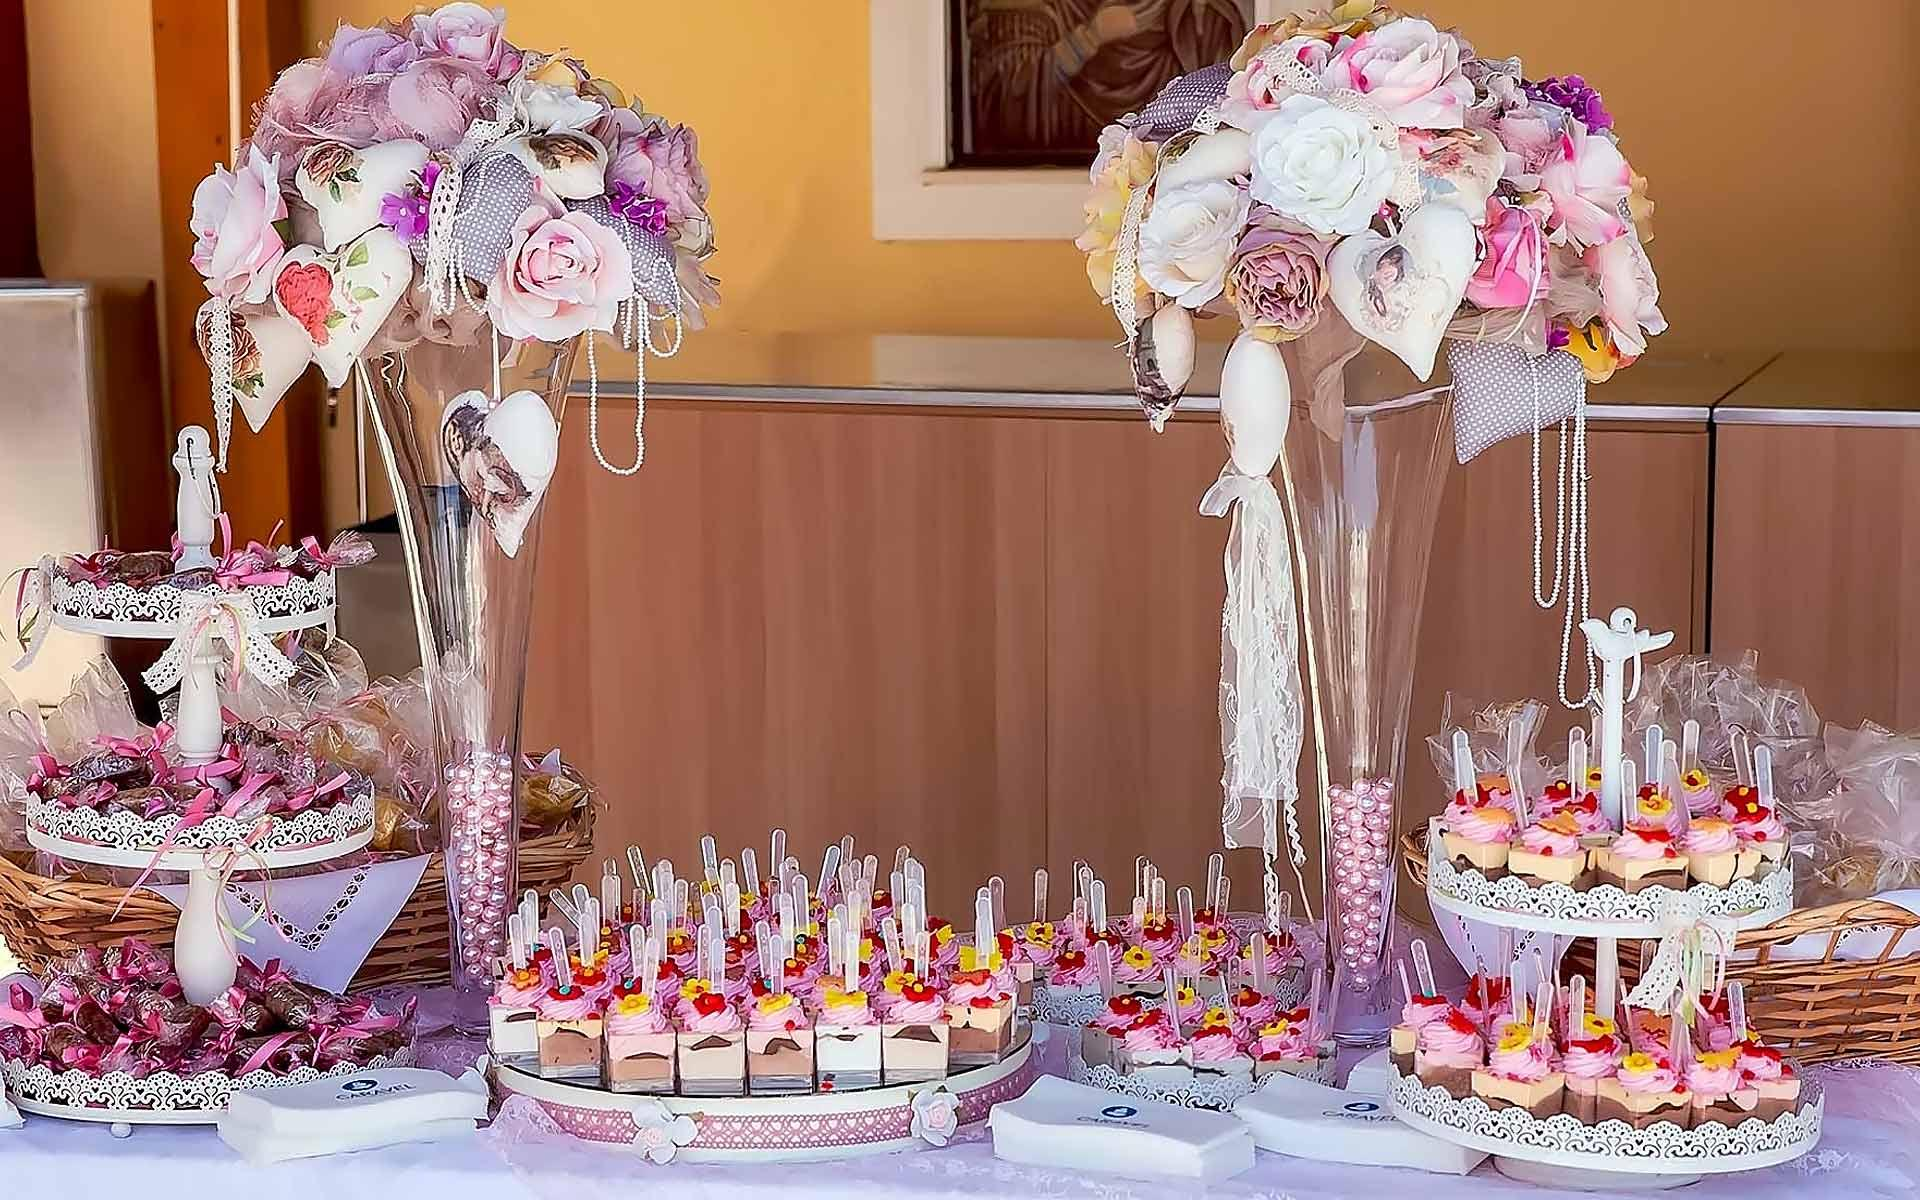 Tailor-Made-Baptism-Dessert-Table-With-Pastel-Fabrics-In-Big-Vases